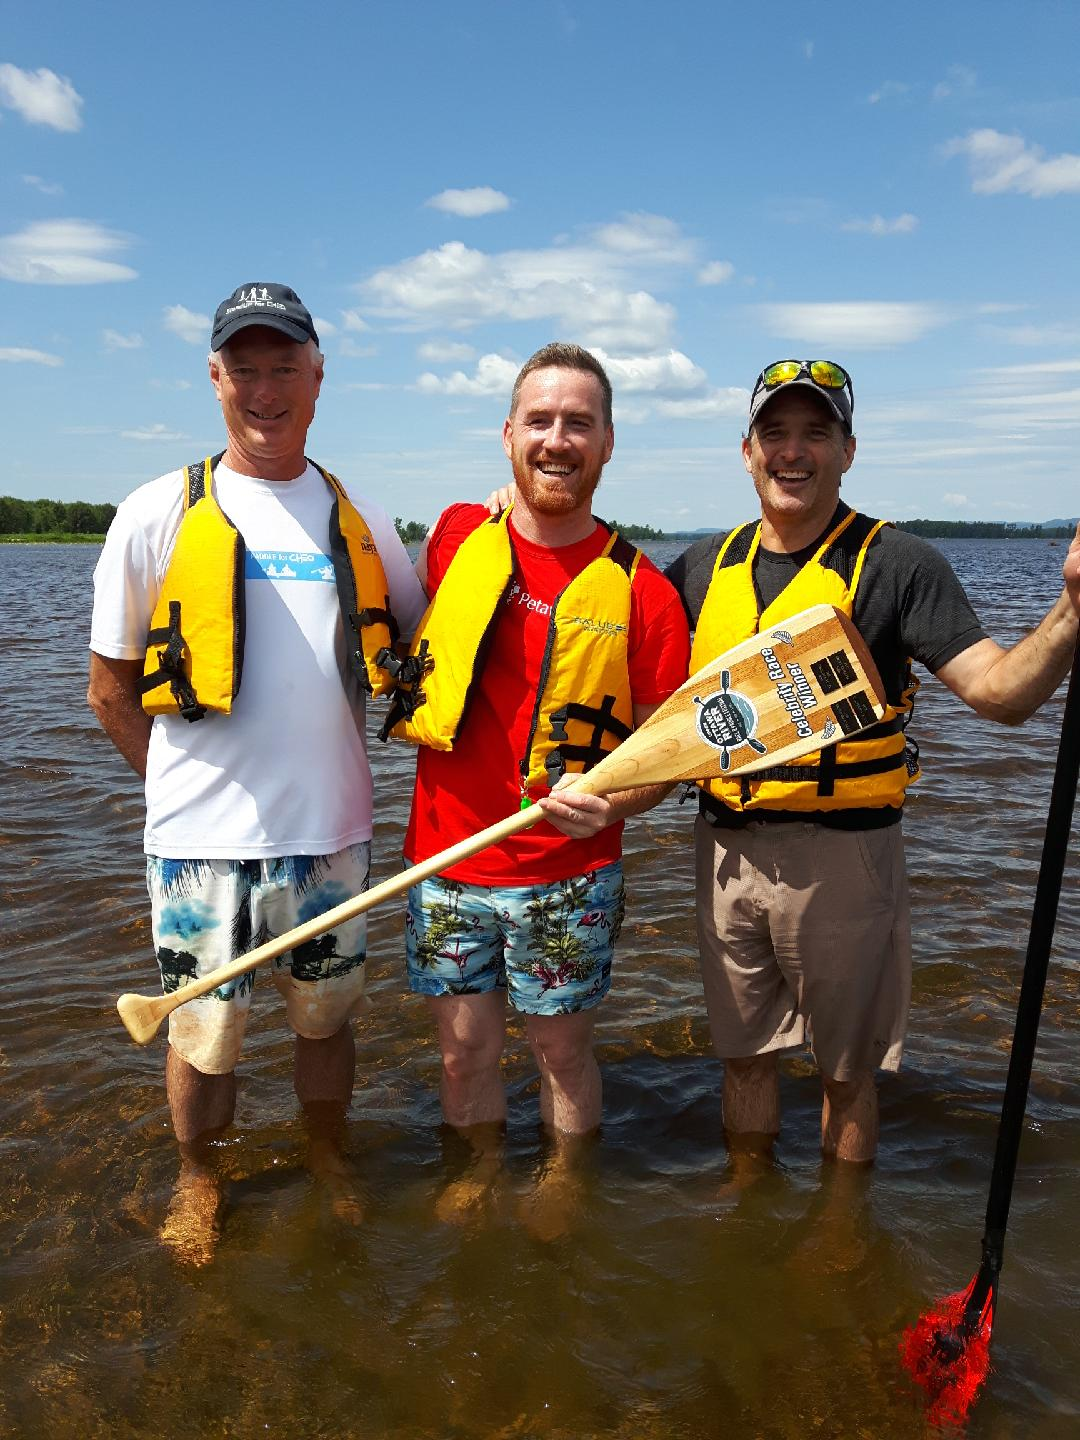 Image of 3 councillors in paddling gear at water's edge